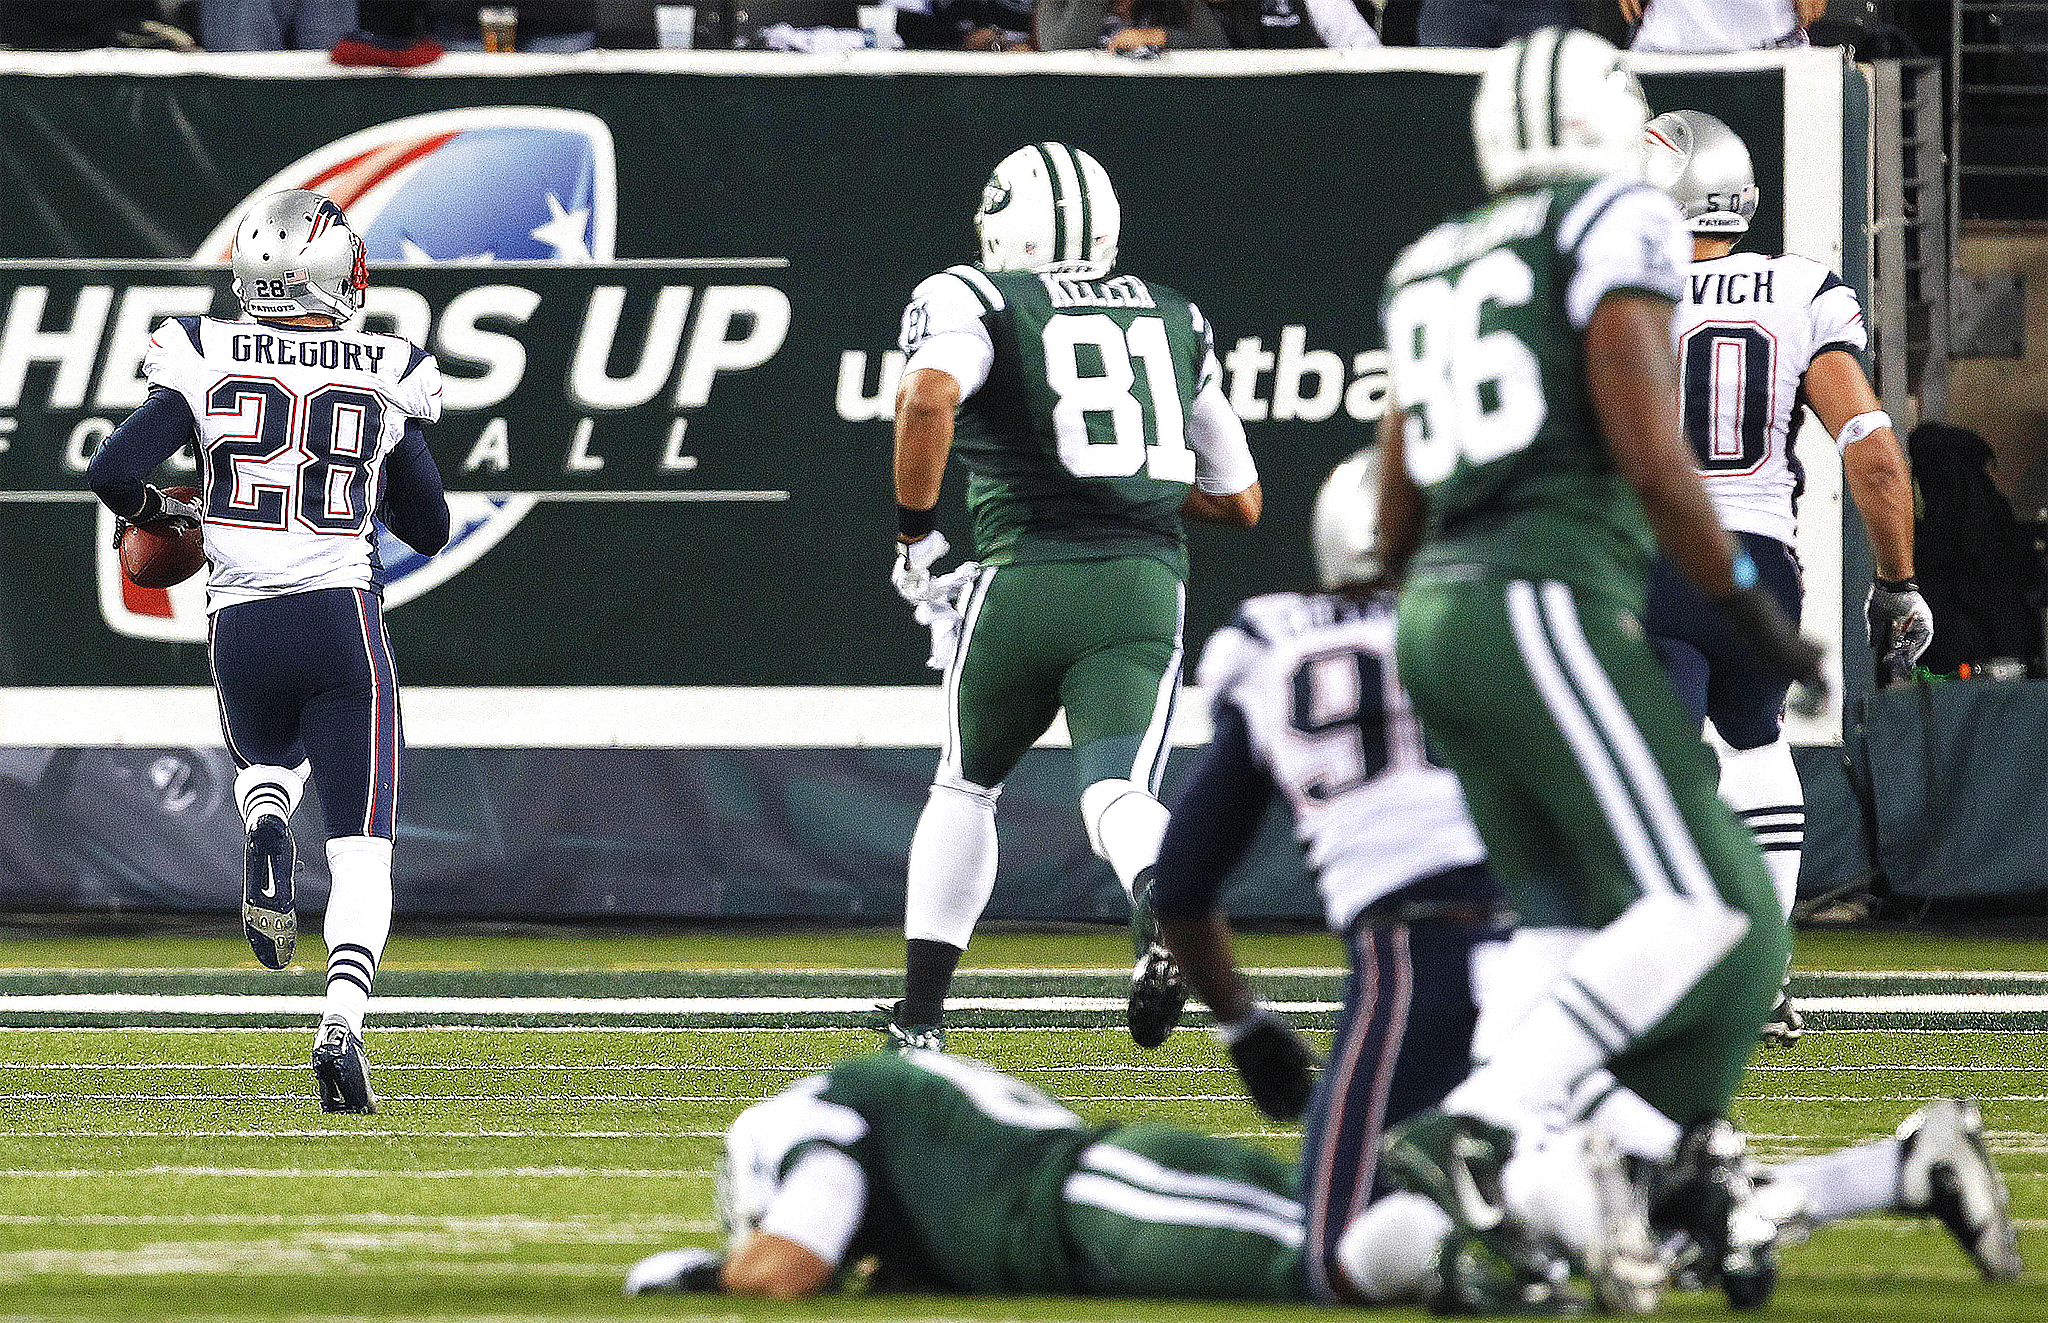 what time do the jets play tomorrow